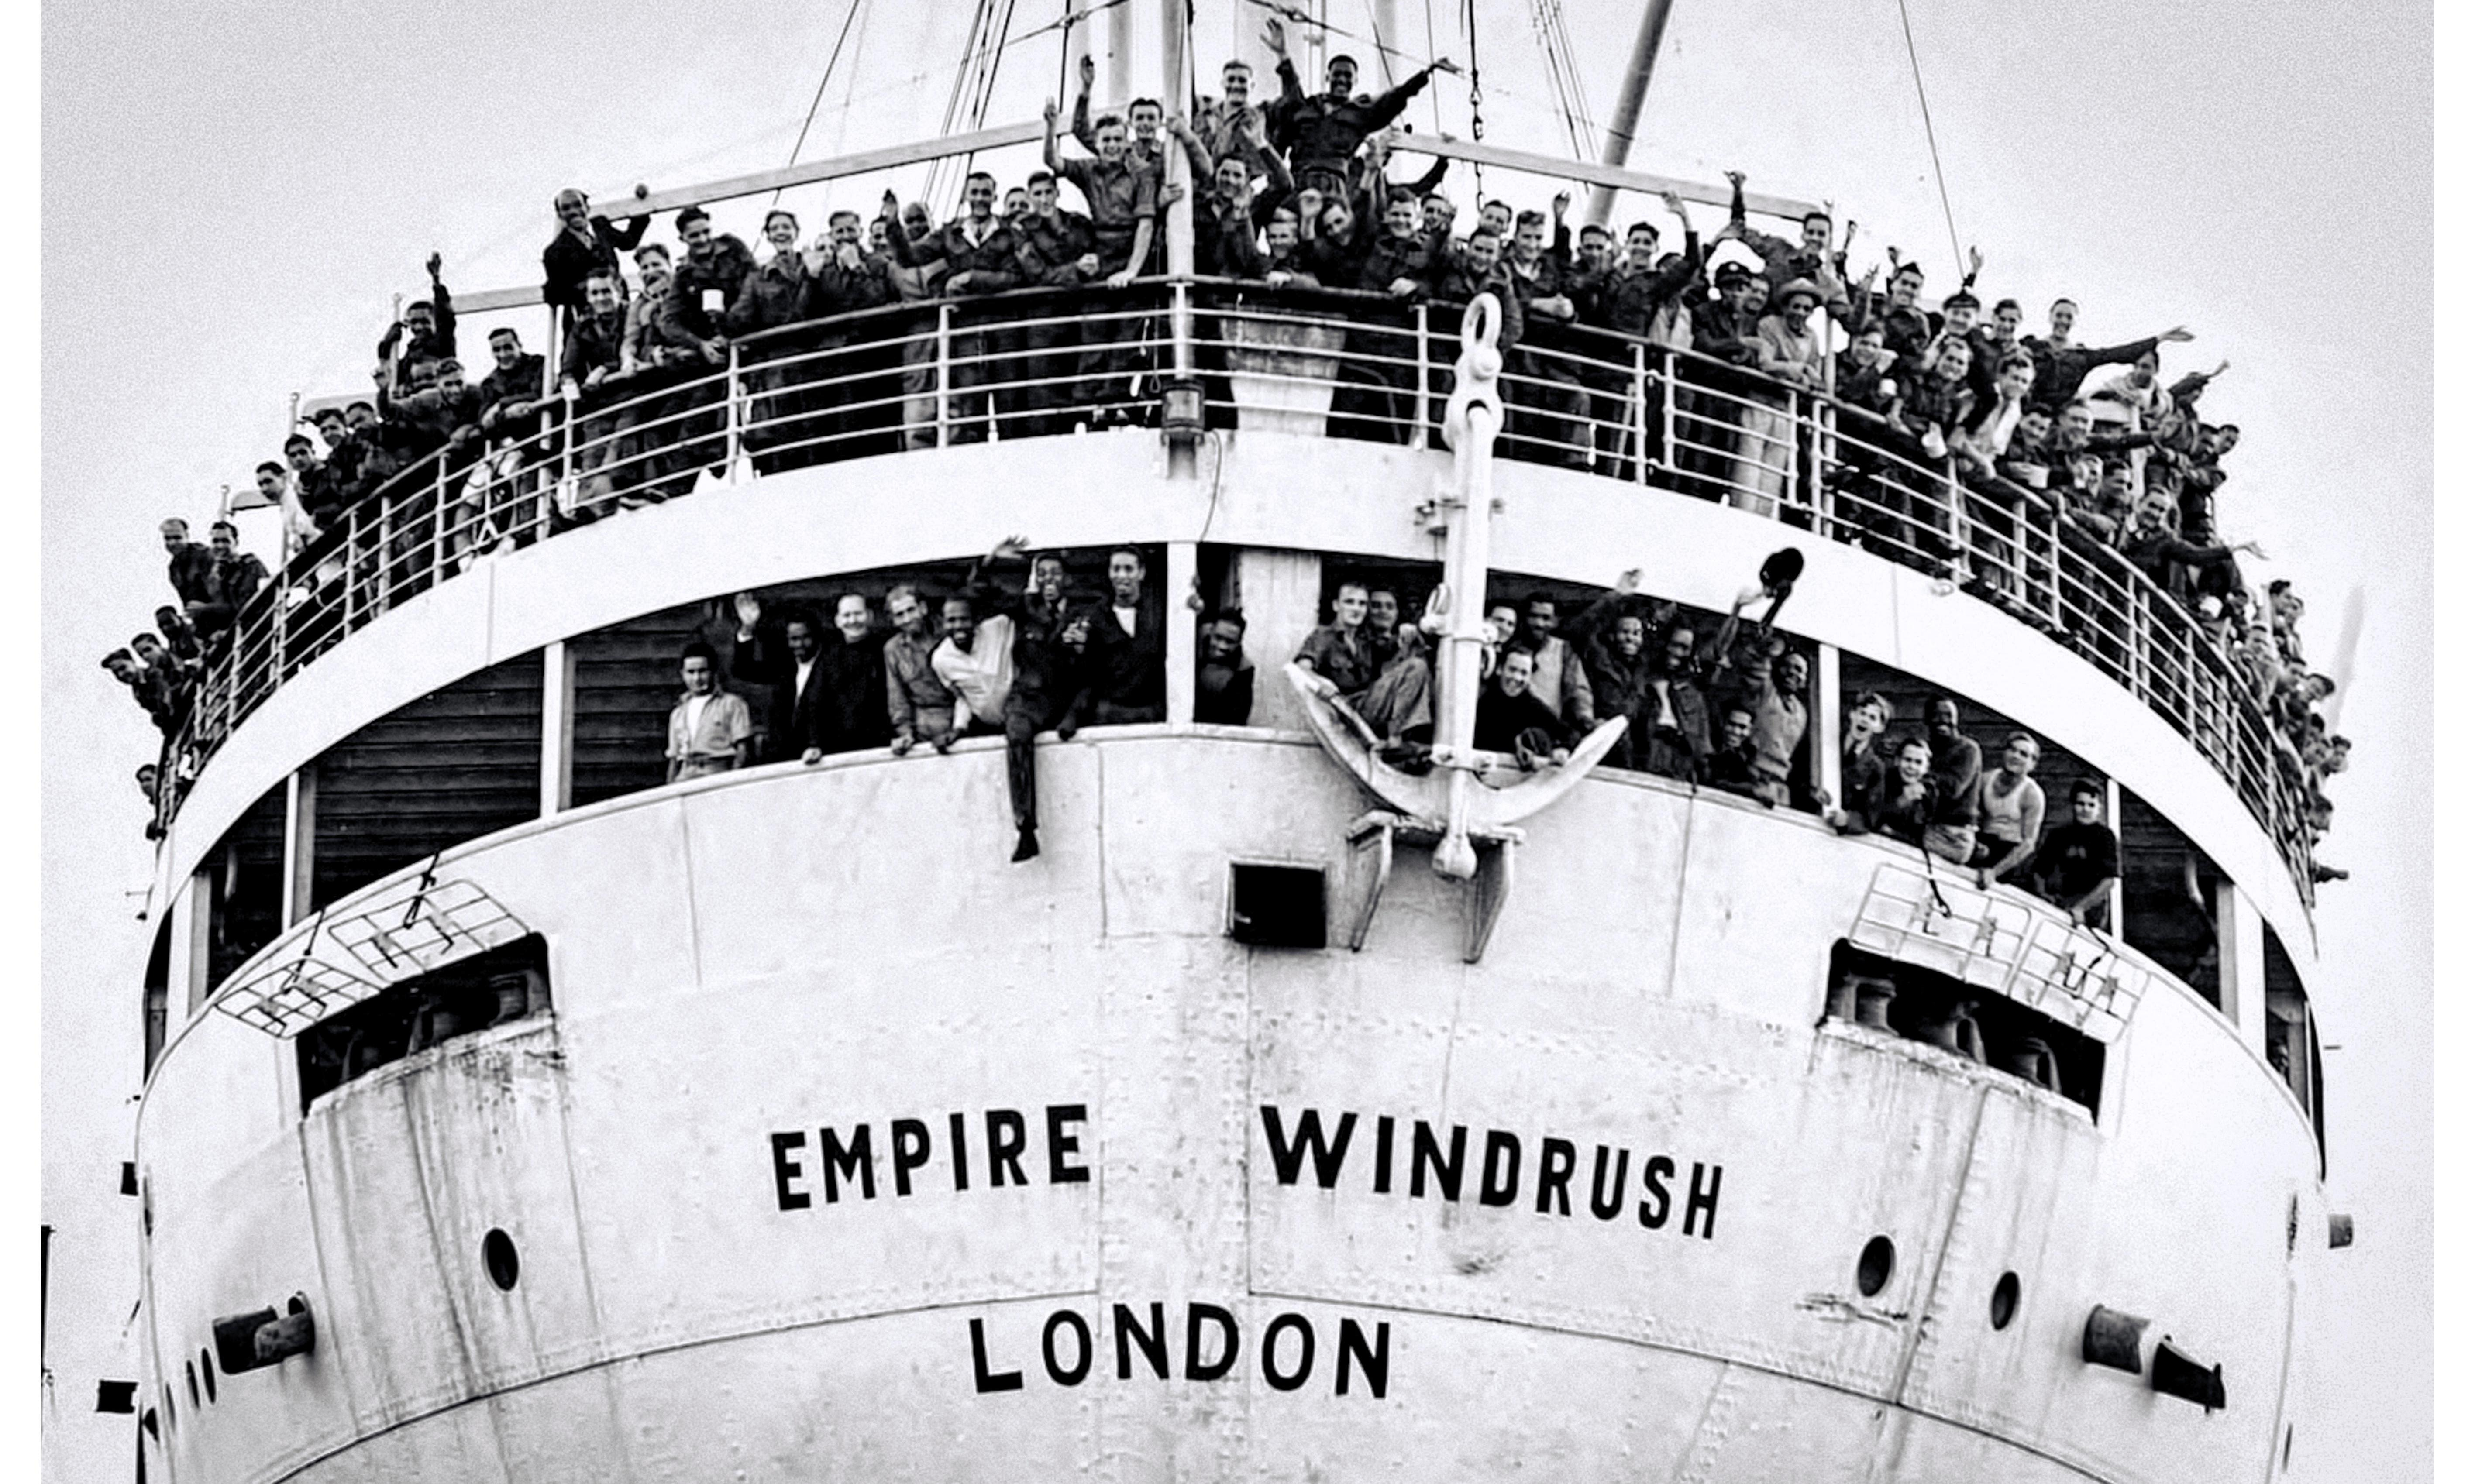 Windrush: archived documents show the long betrayal